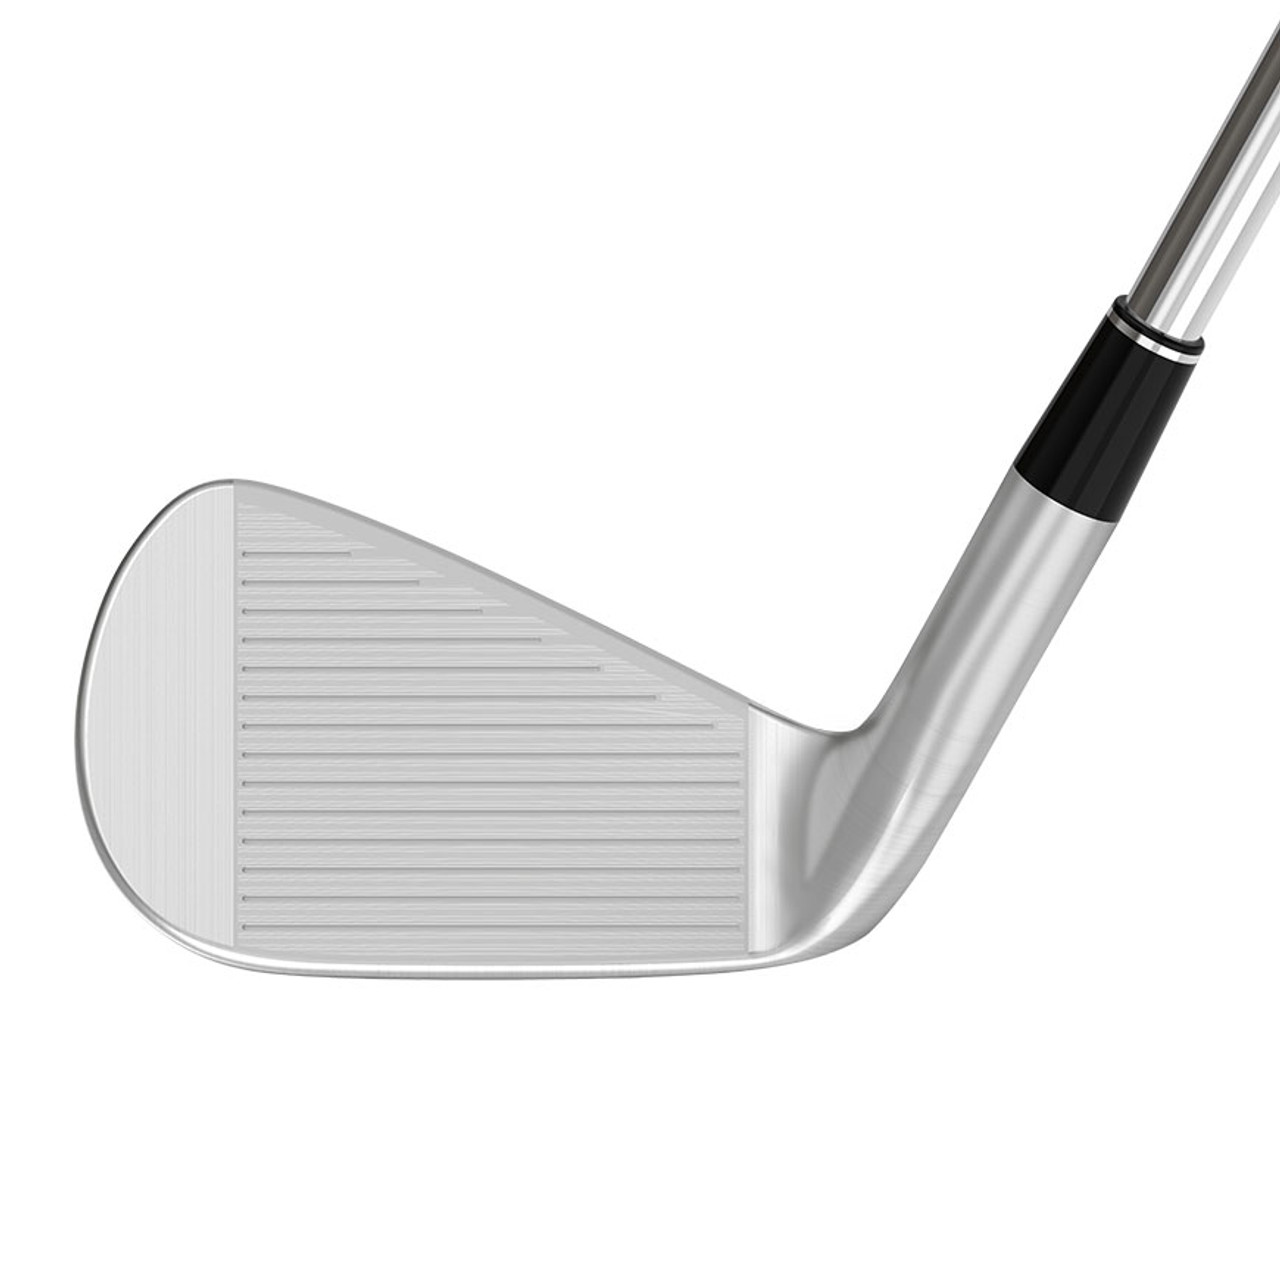 Srixon Z 785 Individual Irons and Wedges